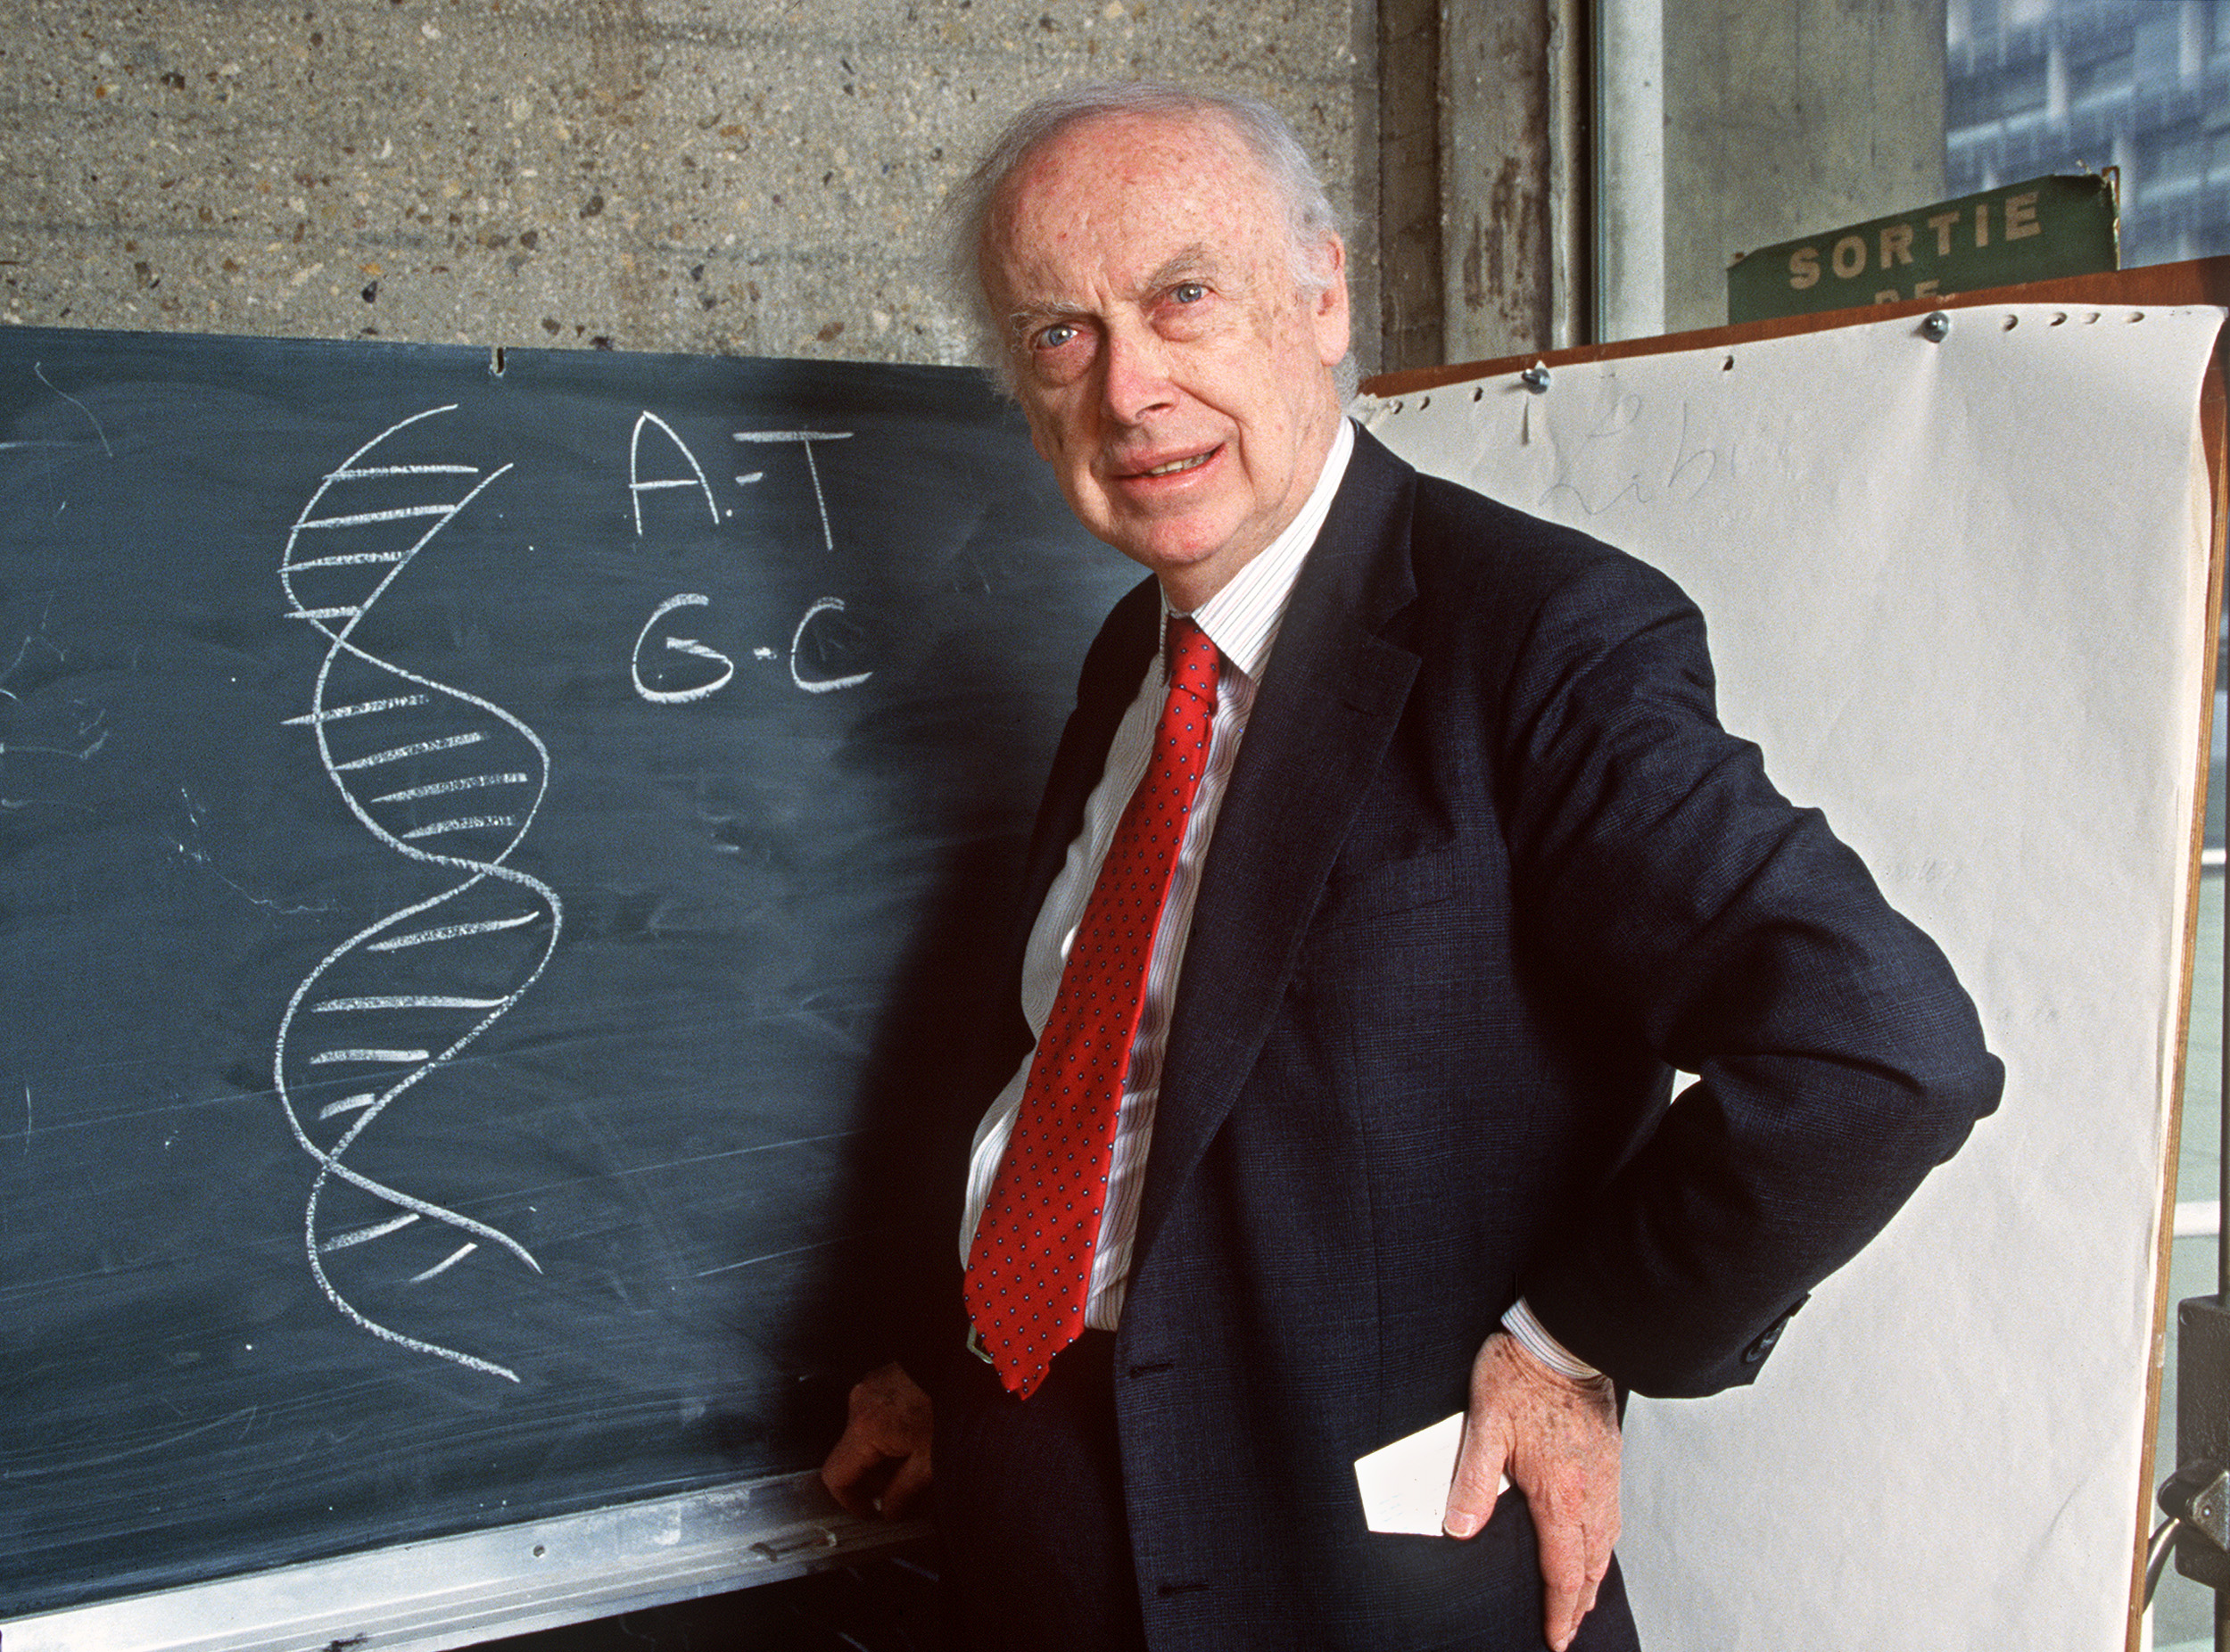 James Watson in 1993, next to a sketch of the structure of DNA